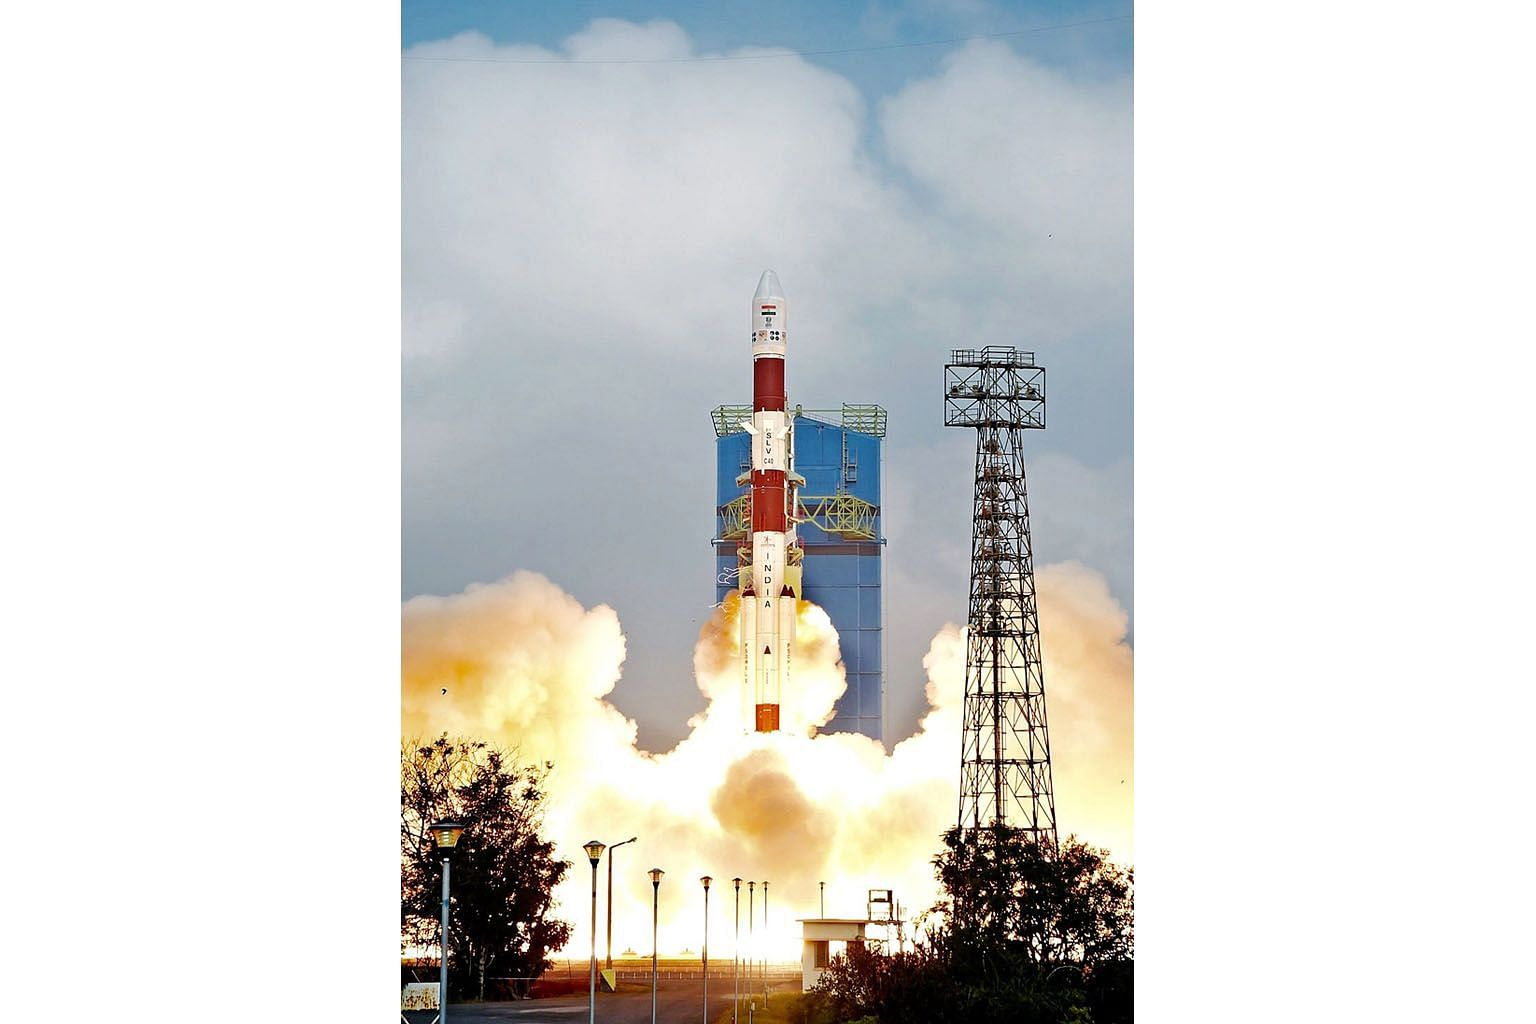 The Indian Space Research Organisation's Polar Satellite Launch Vehicle lifting off from Sriharikota in southern Andhra Pradesh state yesterday.